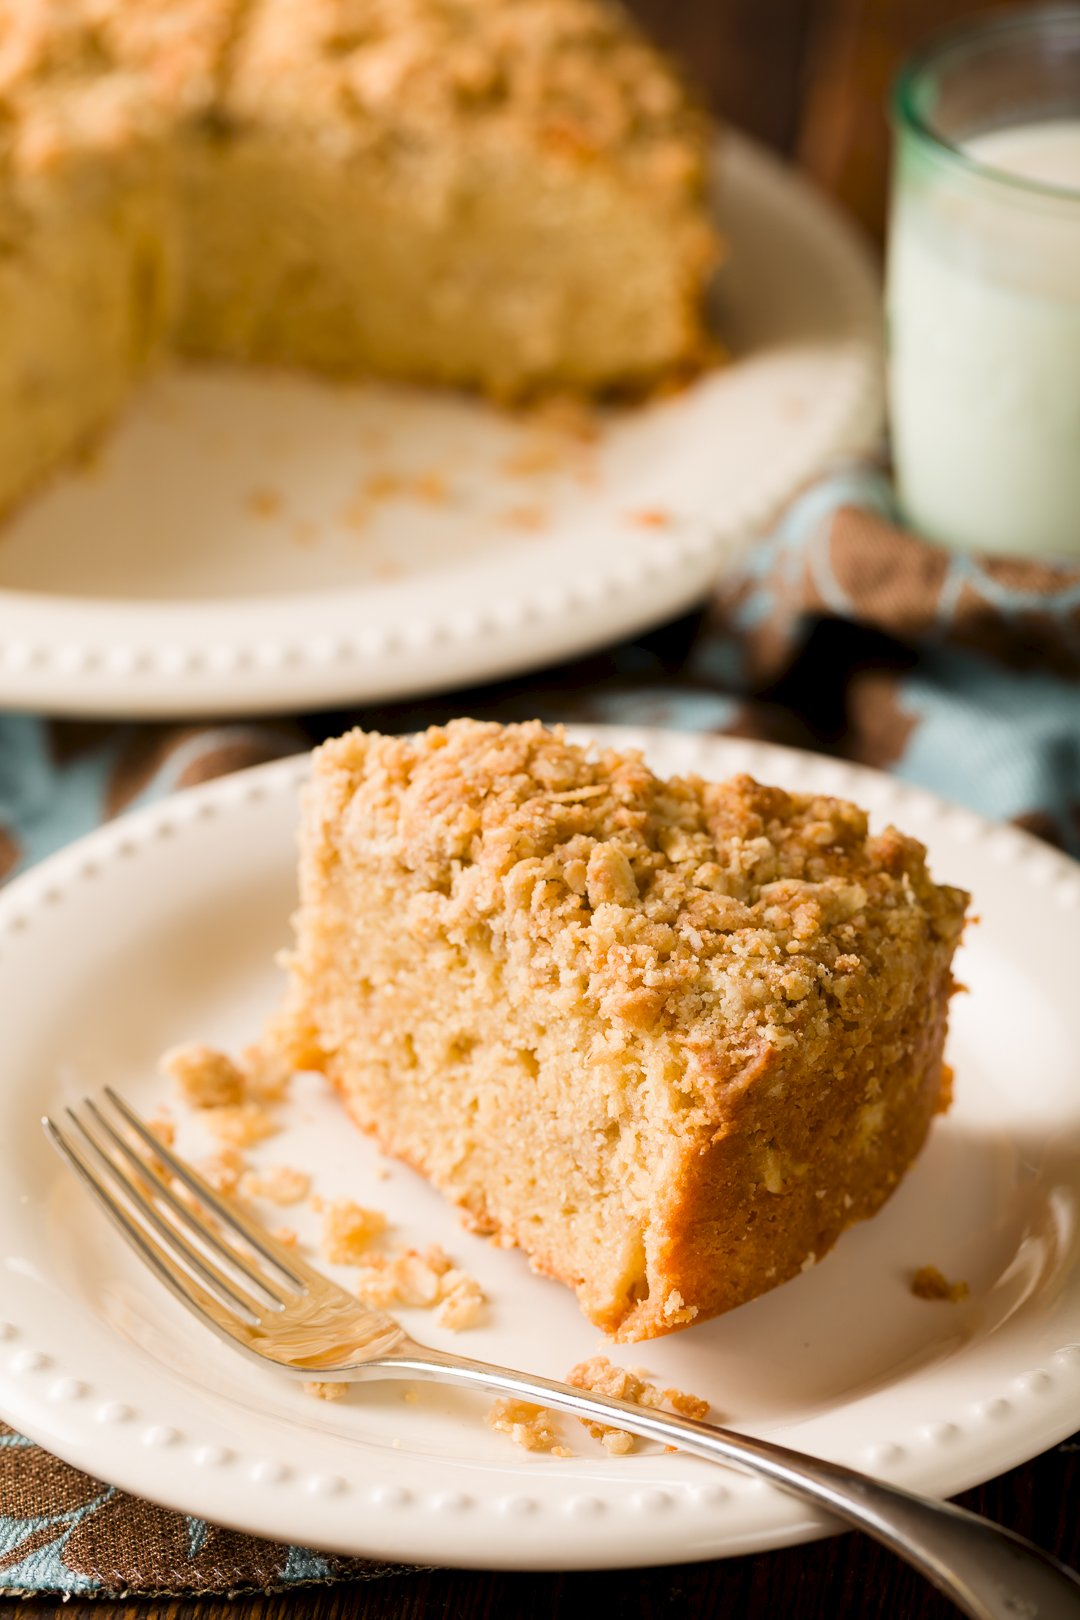 Can You Replace Sour Cream With Yogurt In A Cake